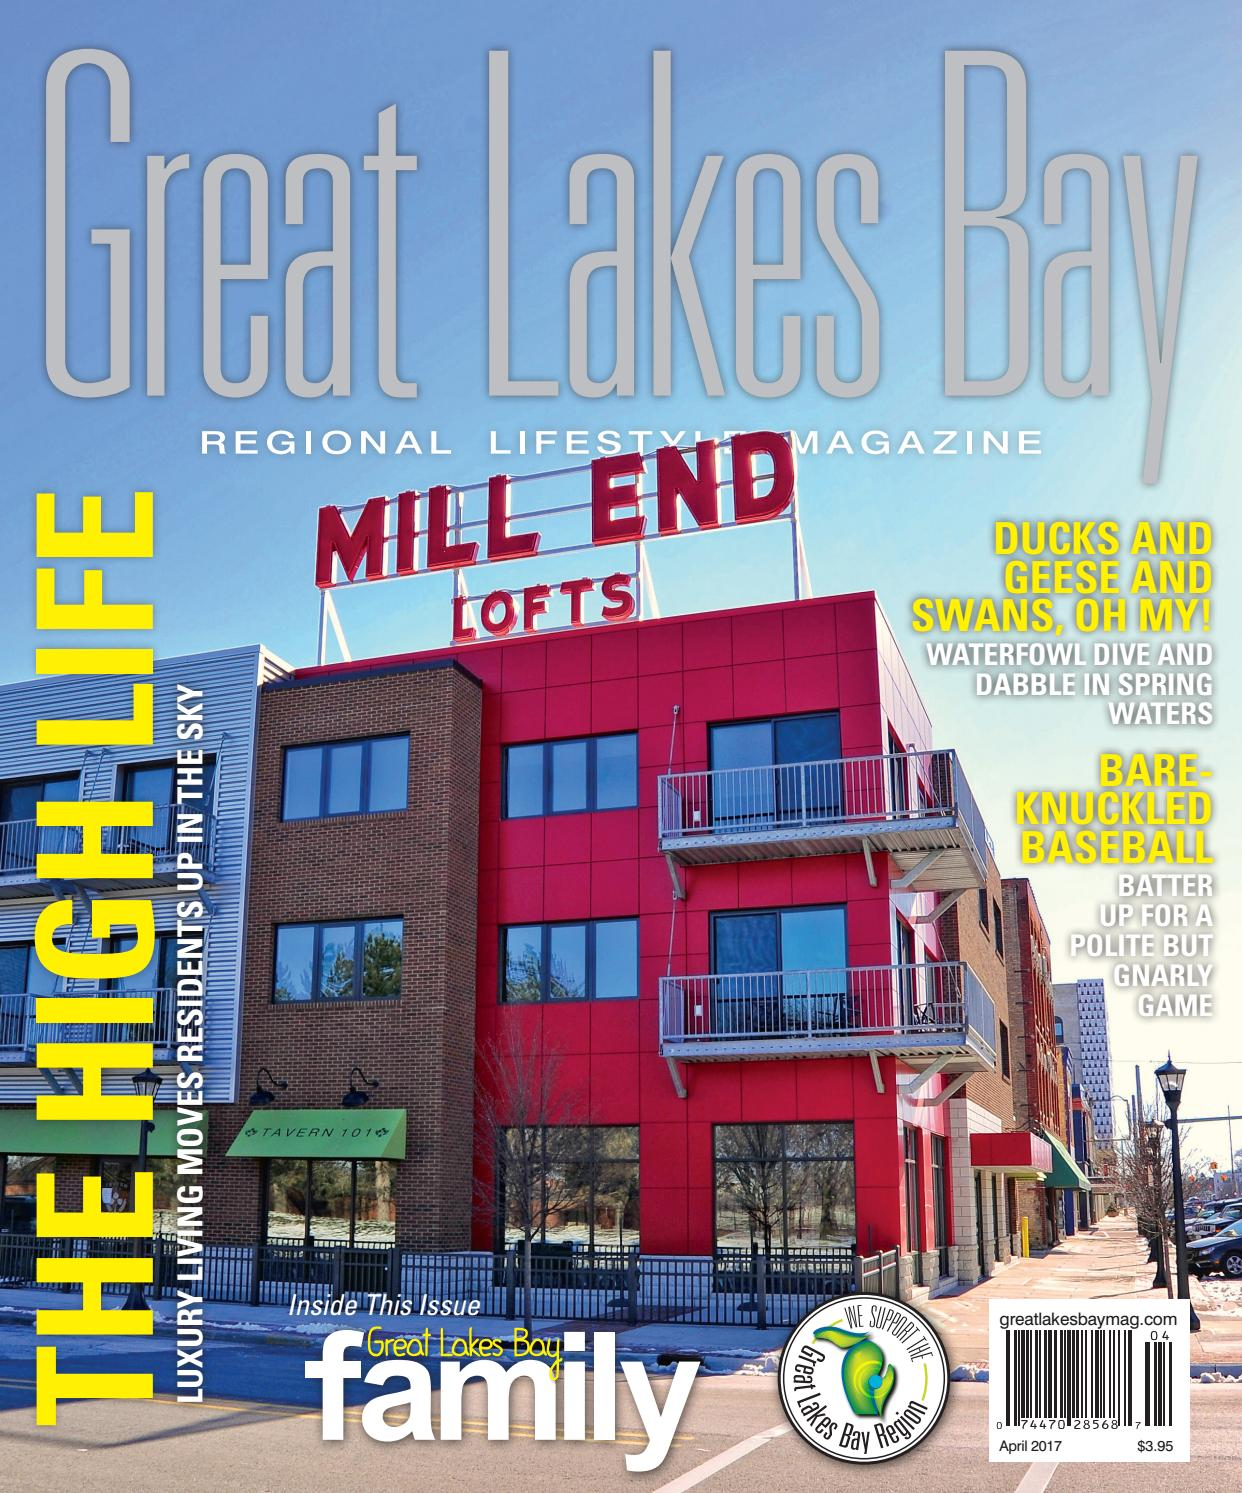 Great Lakes Bay Magazine July 2017 by FP Horak - issuu